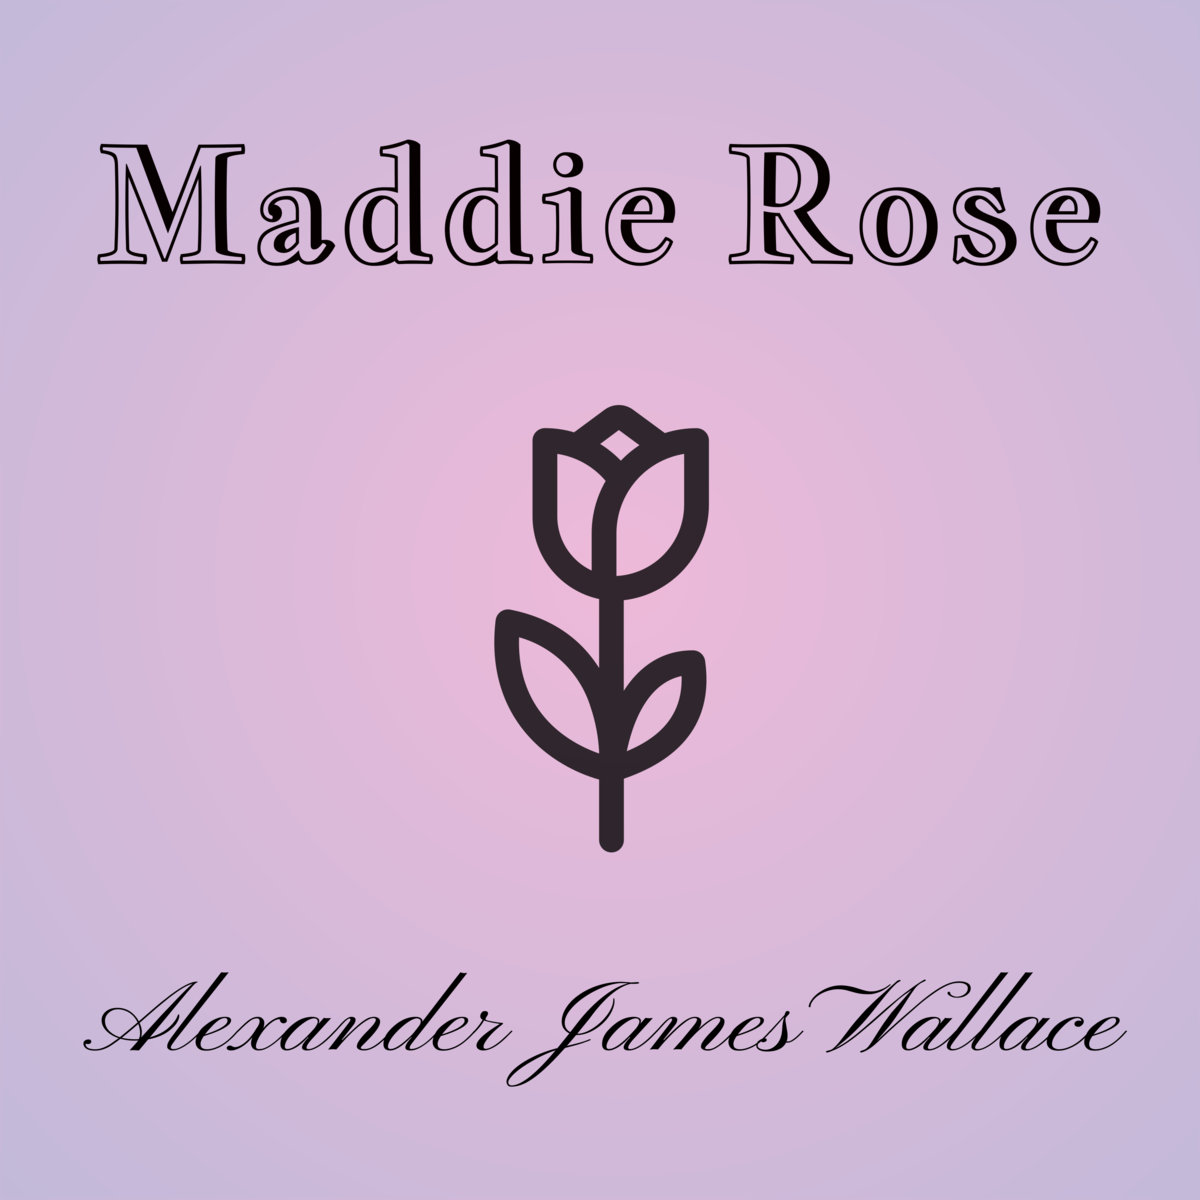 Maddie Rose EP Out Now! - Click the image to listen on your favorite music service.